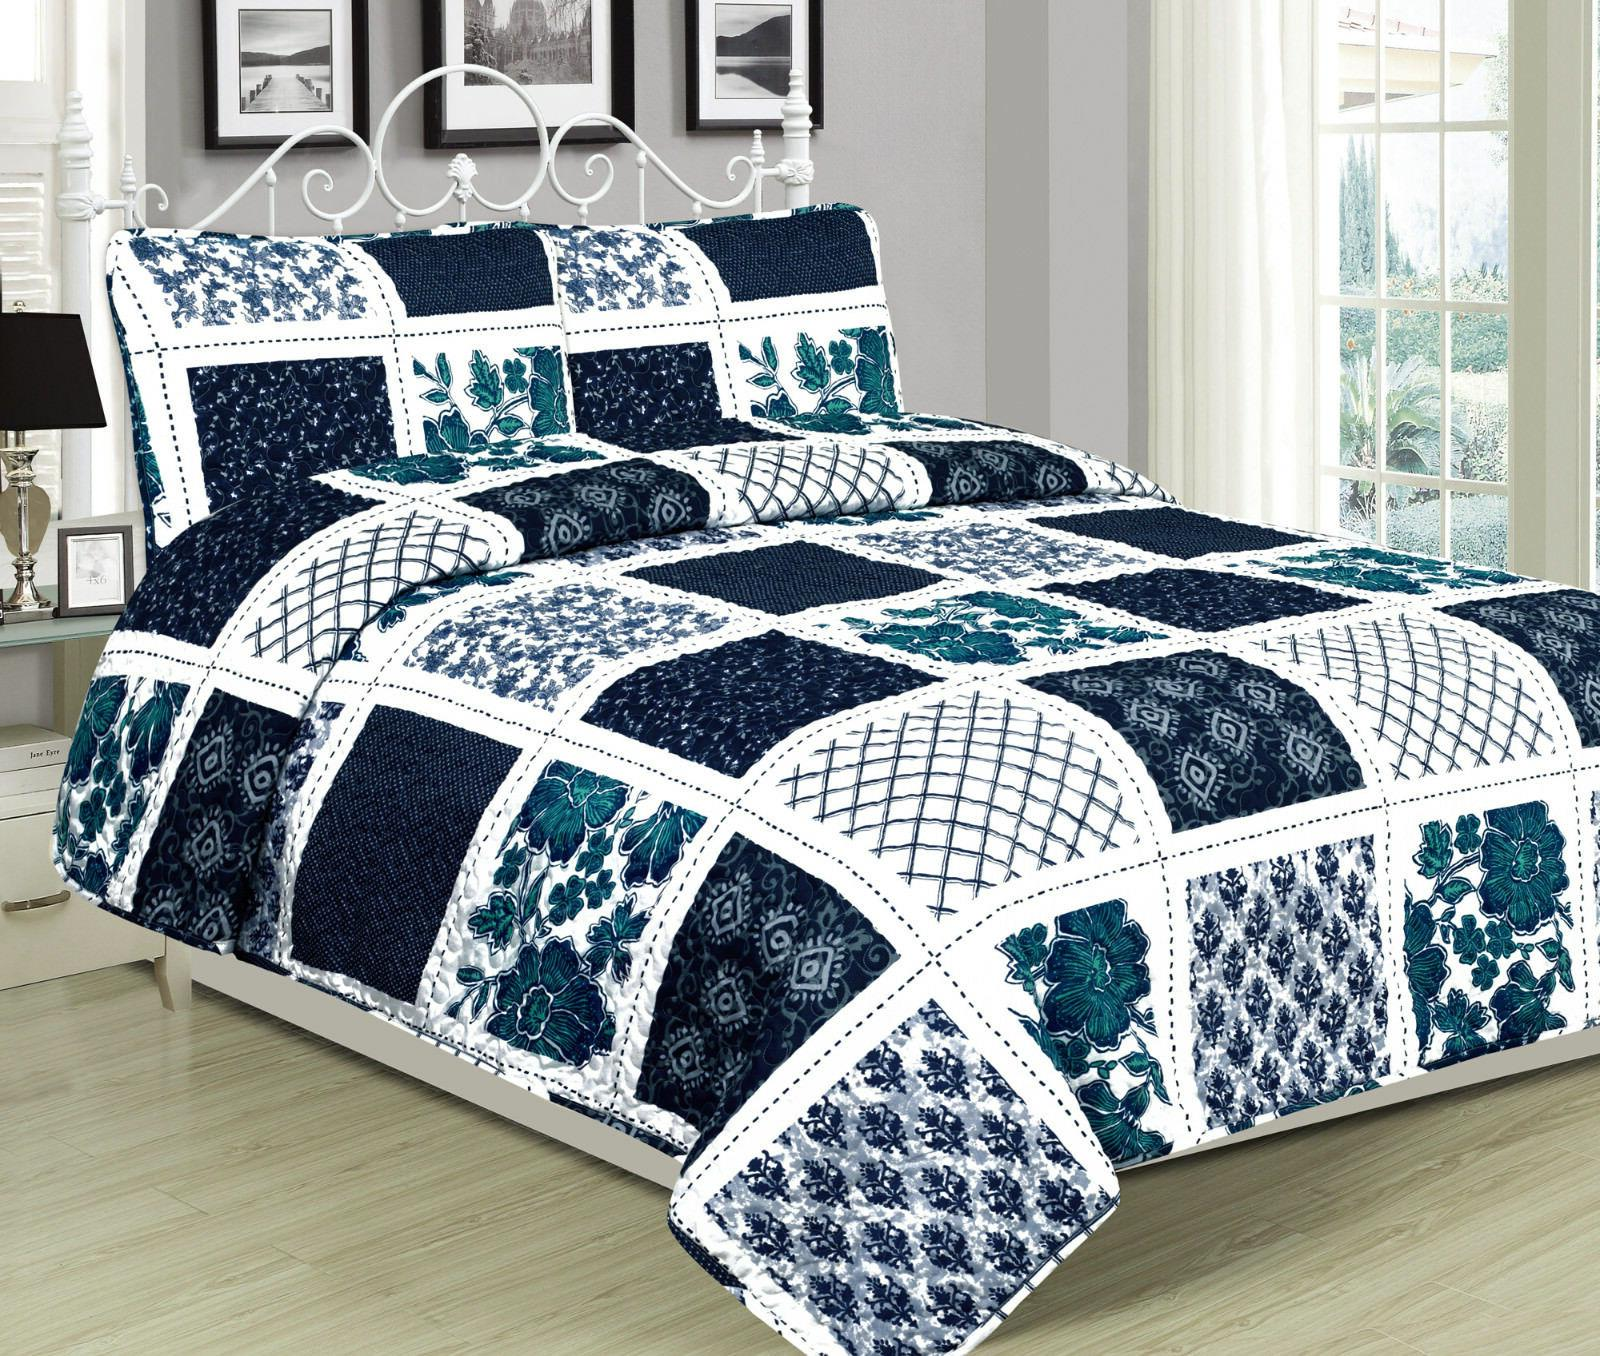 twin queen or king quilt patchwork navy